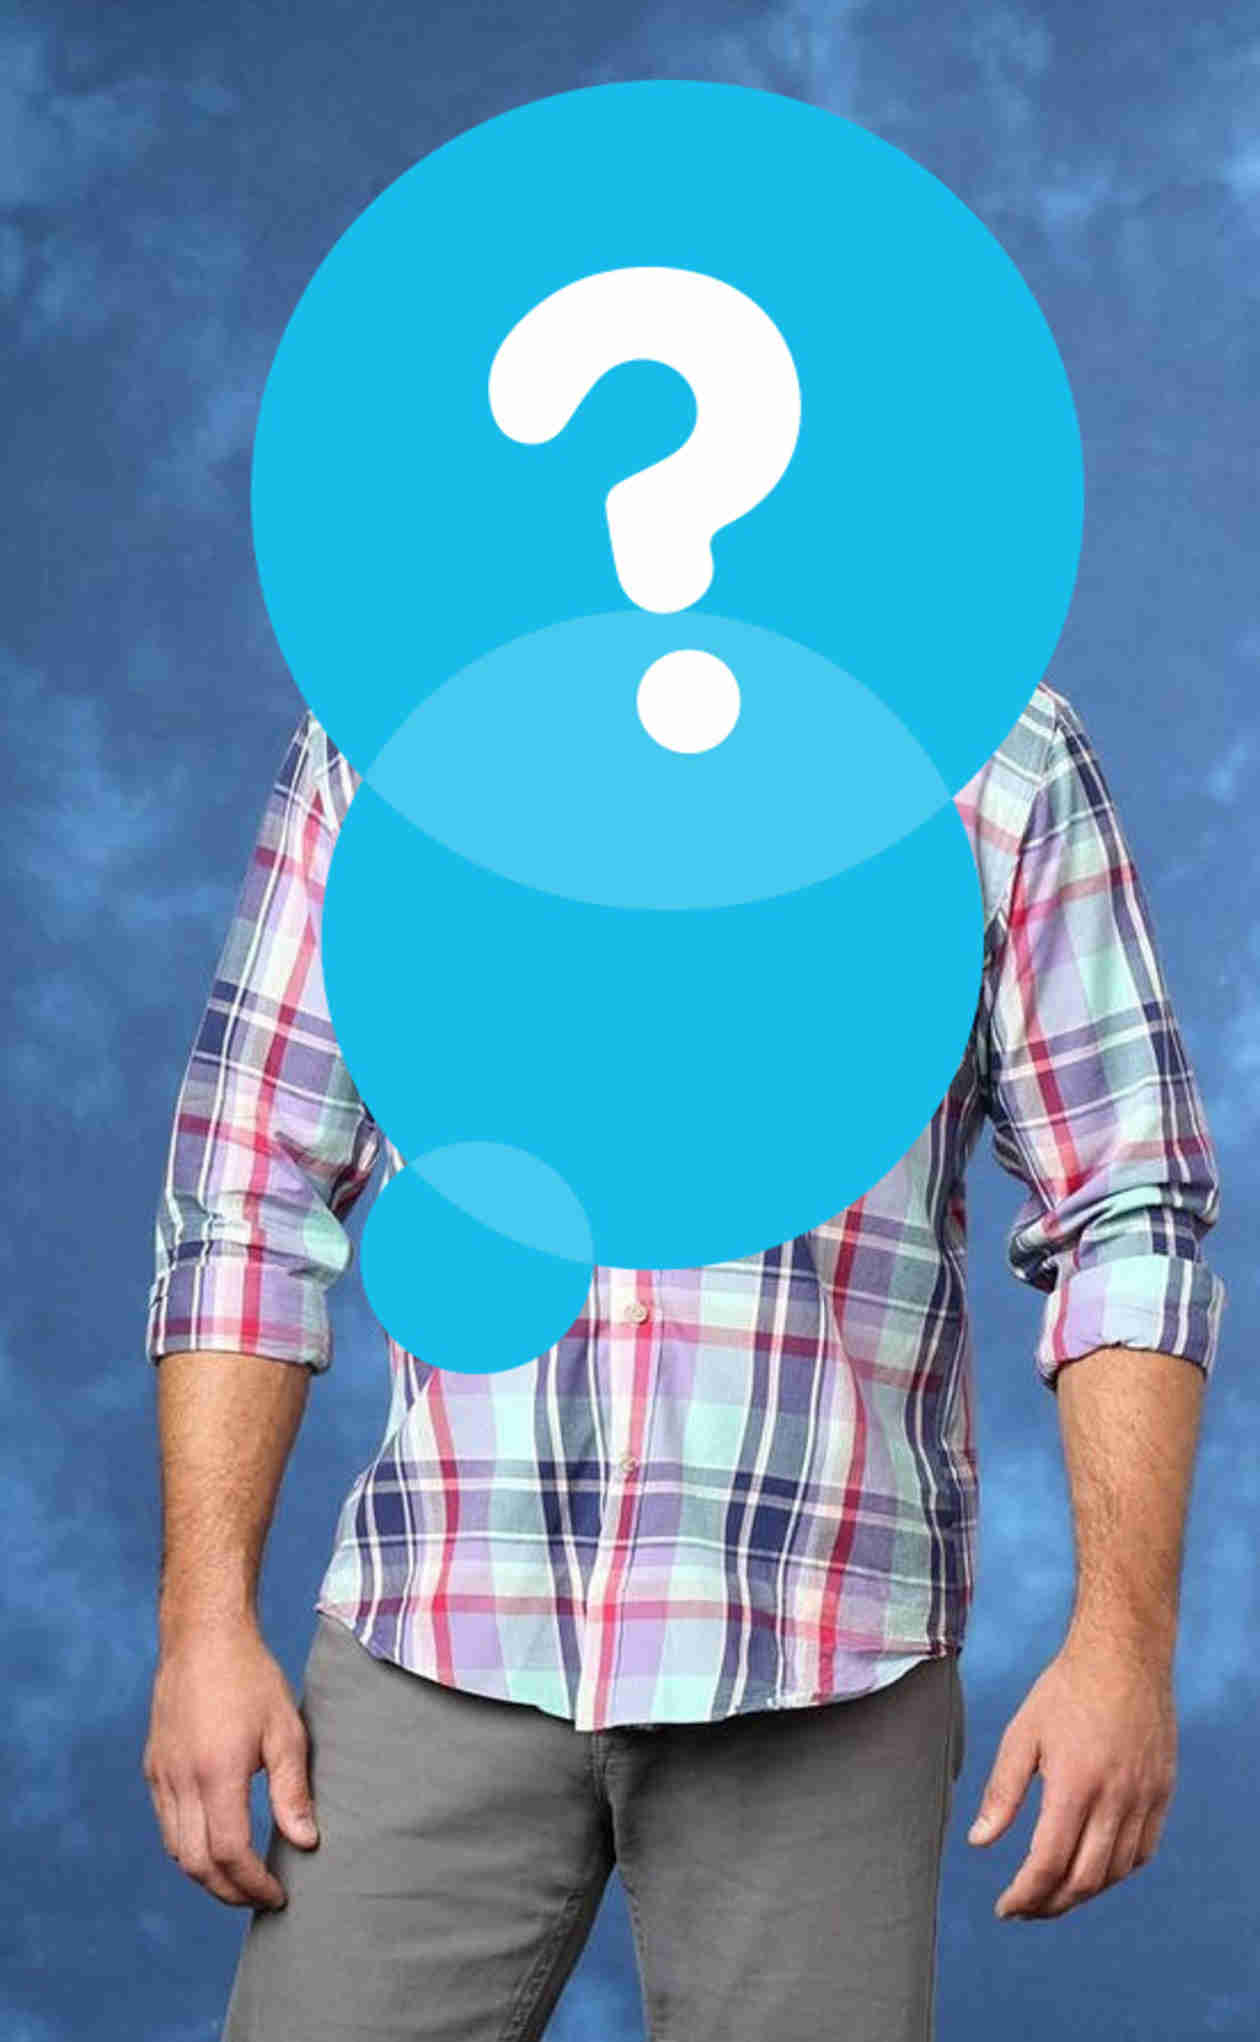 Reality Steve Says ABC Has Picked the Official Bachelor 2015 — Who Is It?